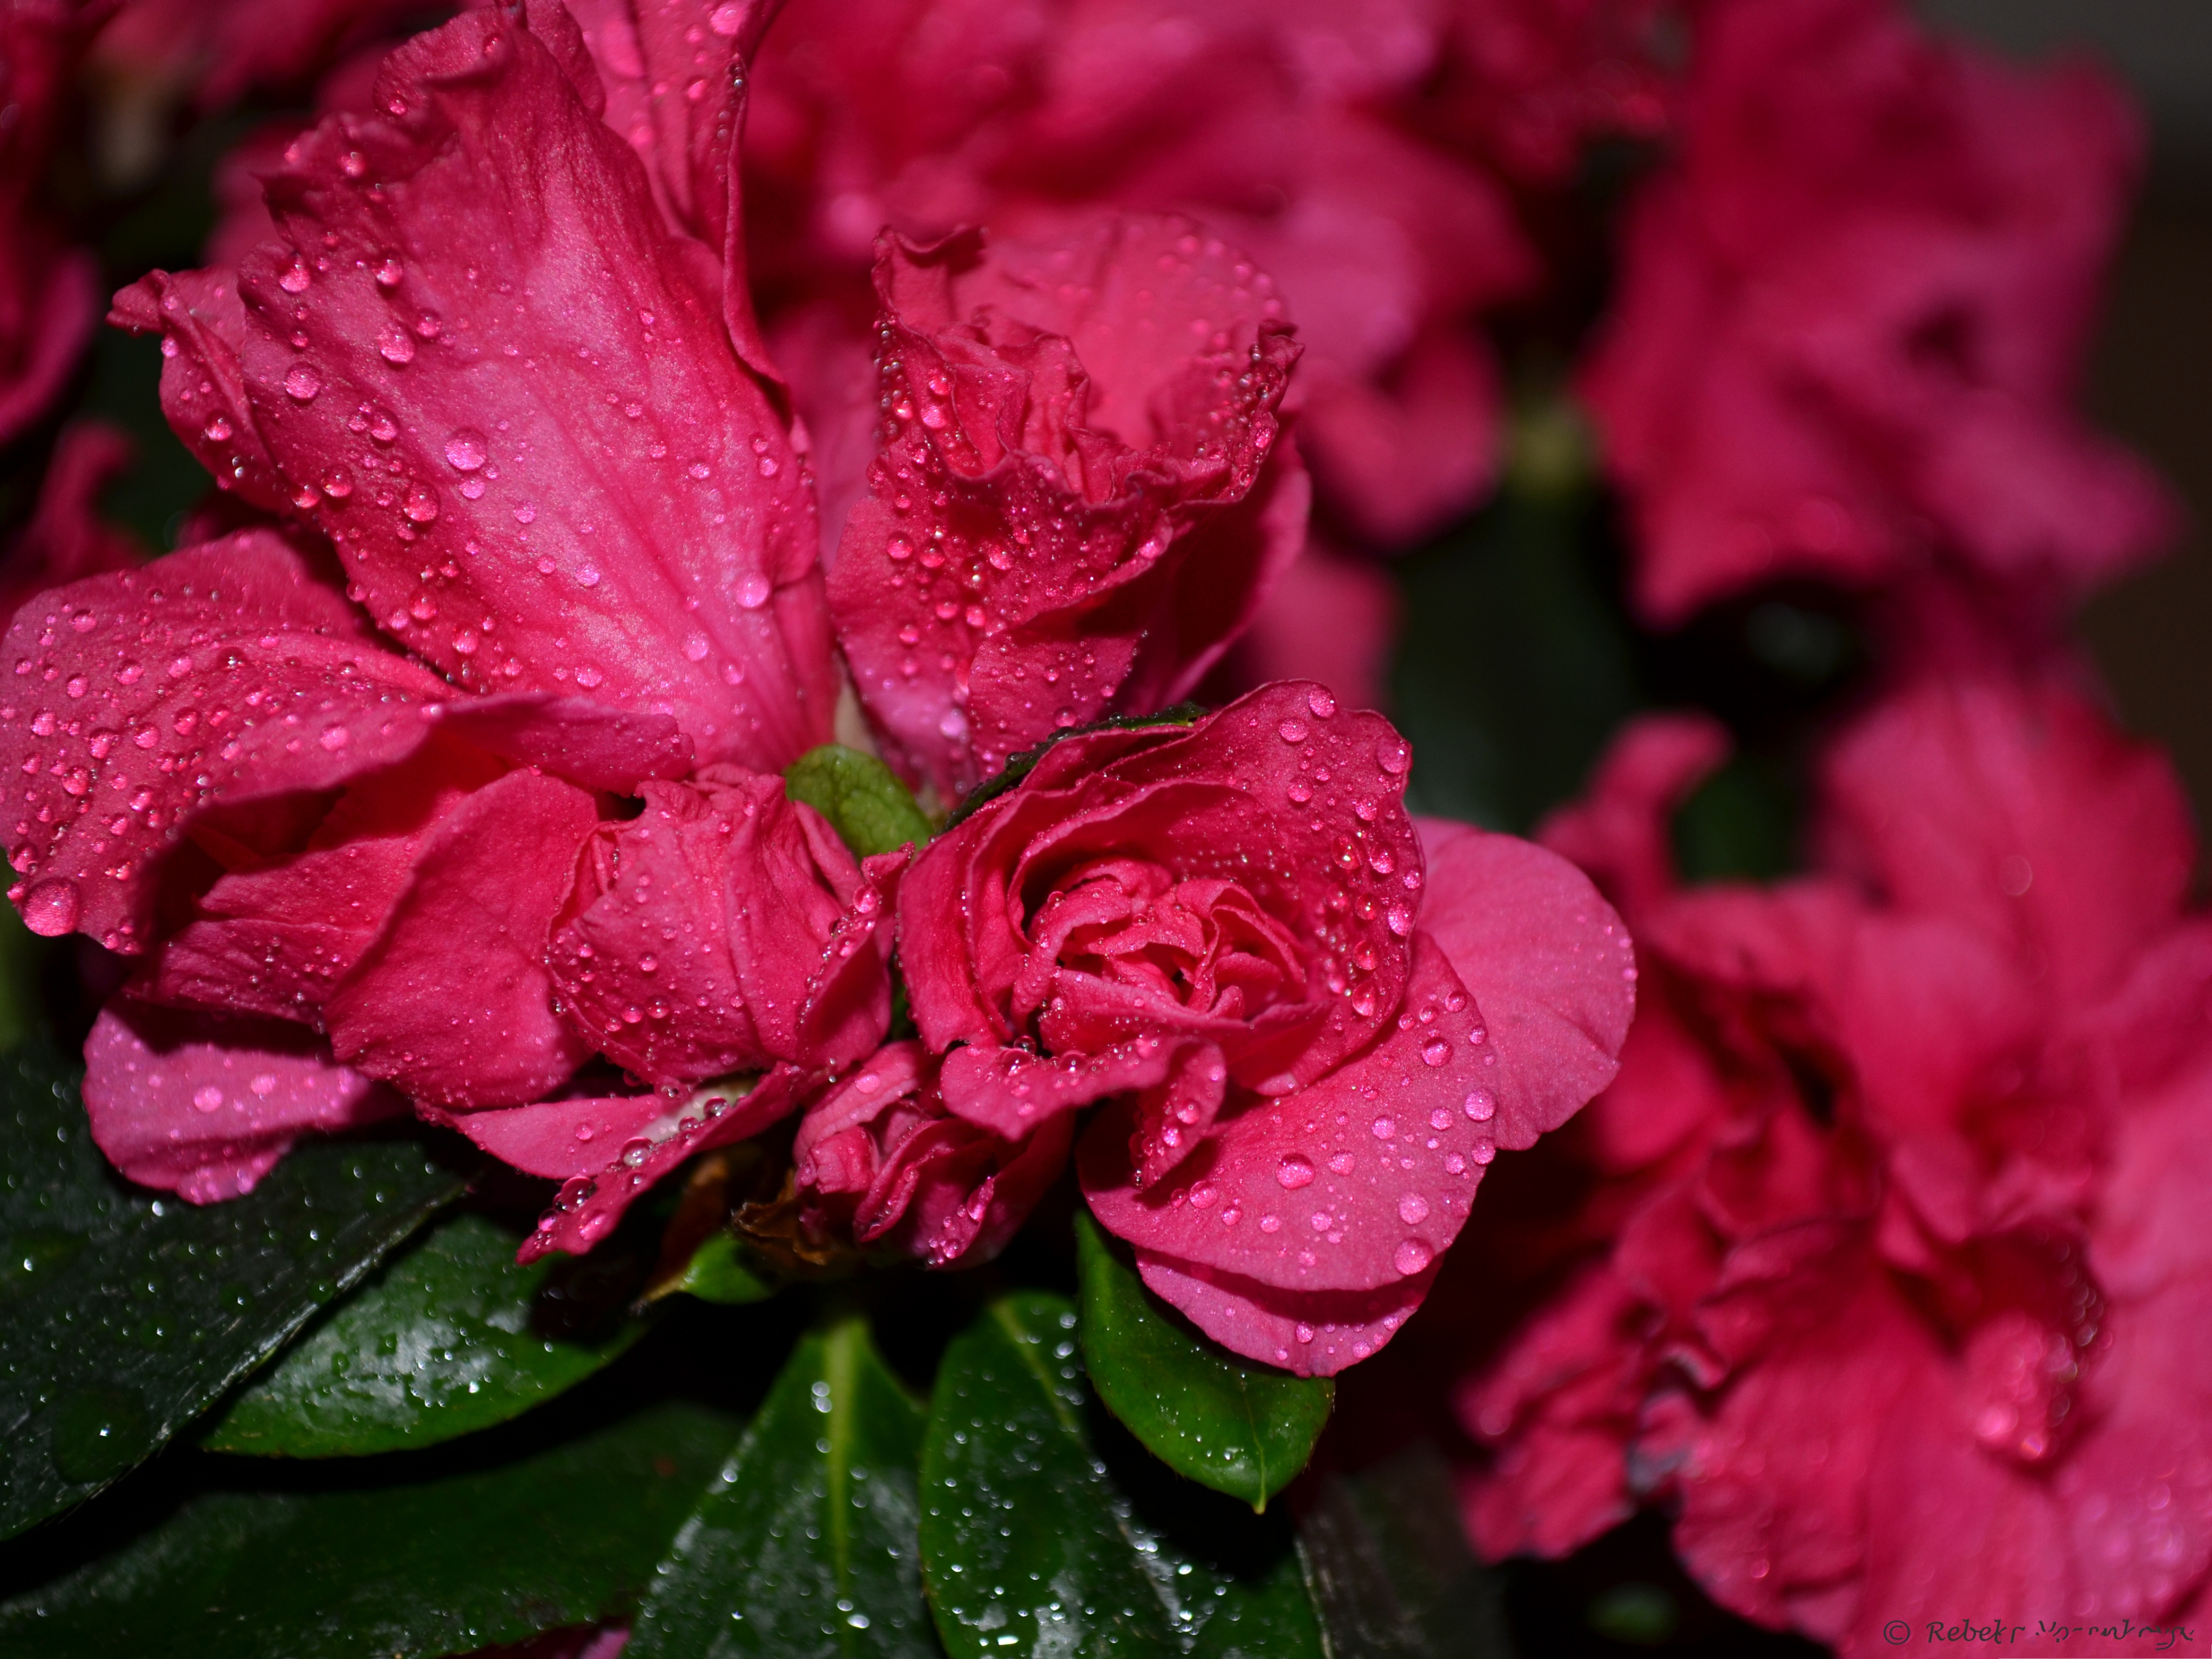 click to free download the wallpaper--Pink Flowers Image, Blooming Flowers with Rain Drops, Fresh and Clean Scene 4096X3072 free wallpaper download